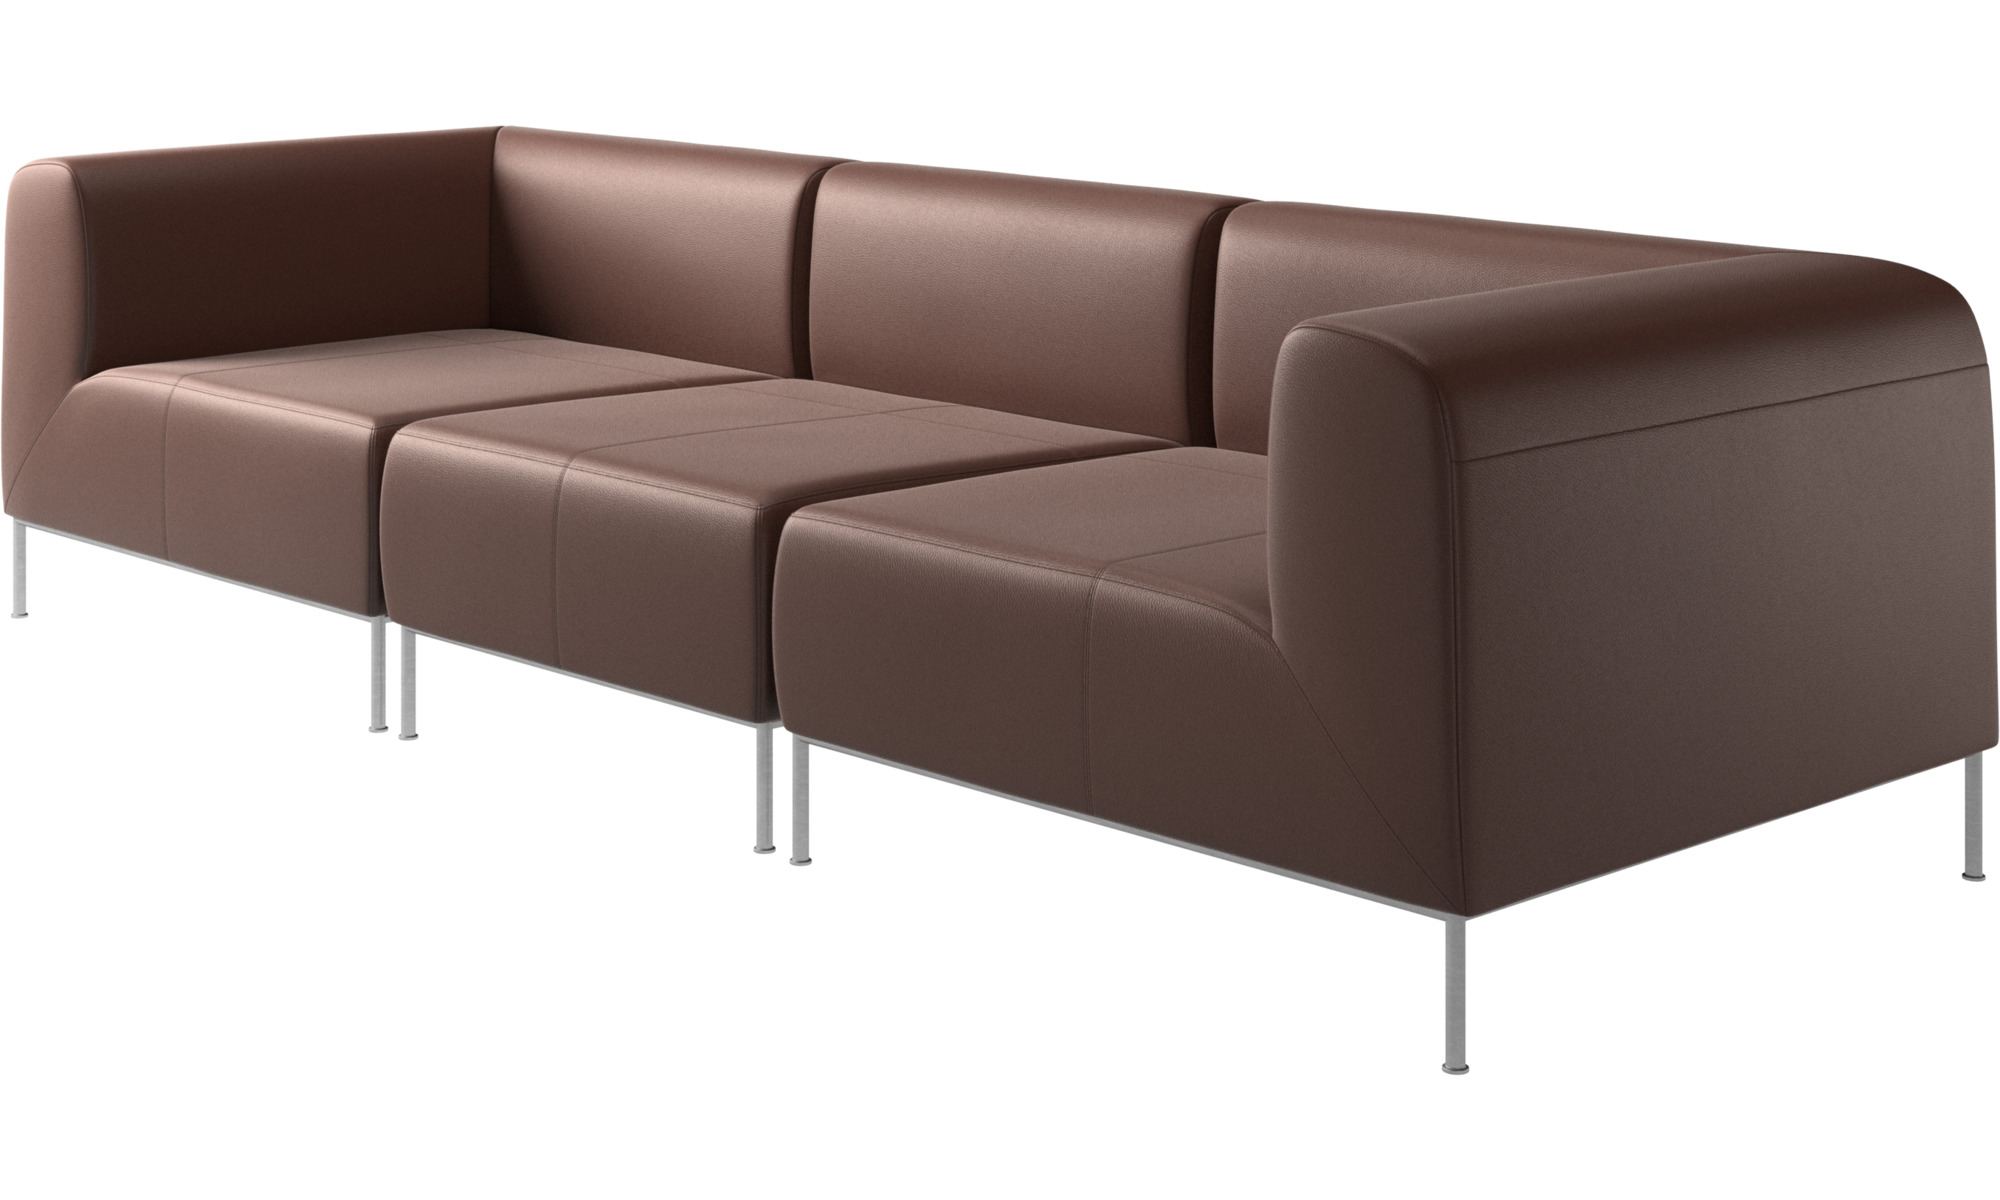 Modular Sofas Miami Sofa Brown Leather